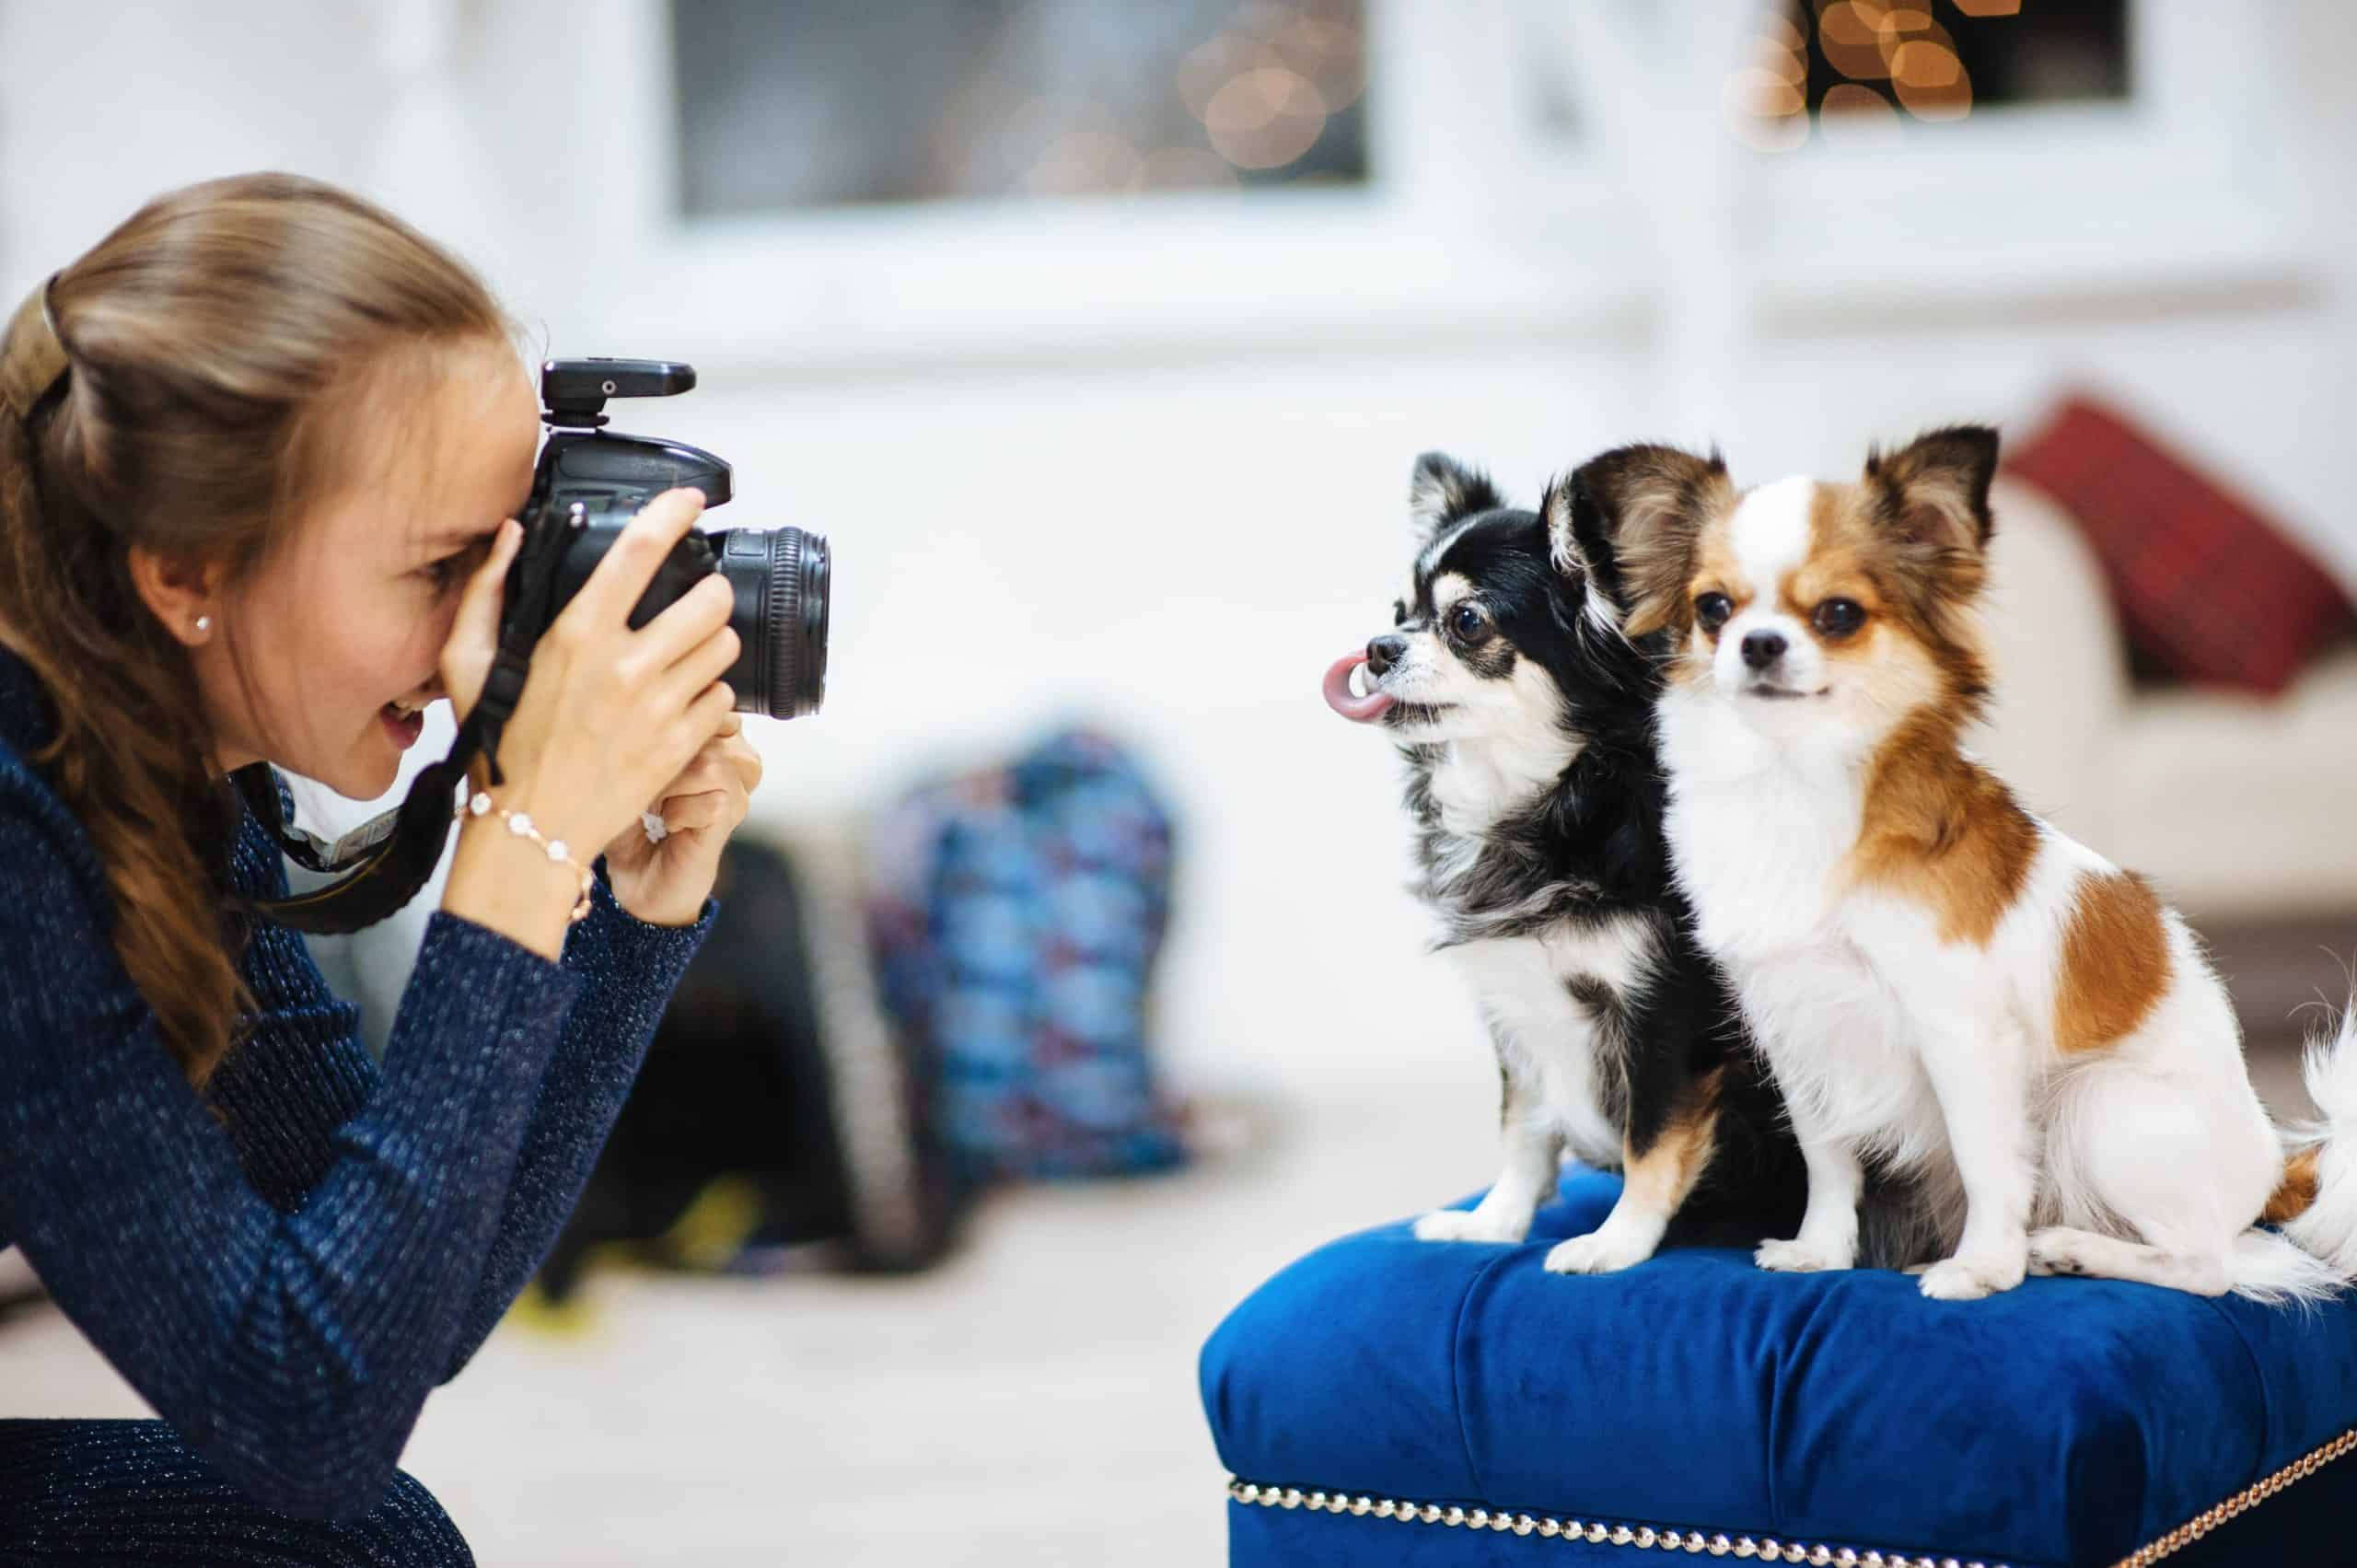 Female photographer shoots images of Papillions in a photo studio. Ask for recommendations to find the best pet portraits websites.